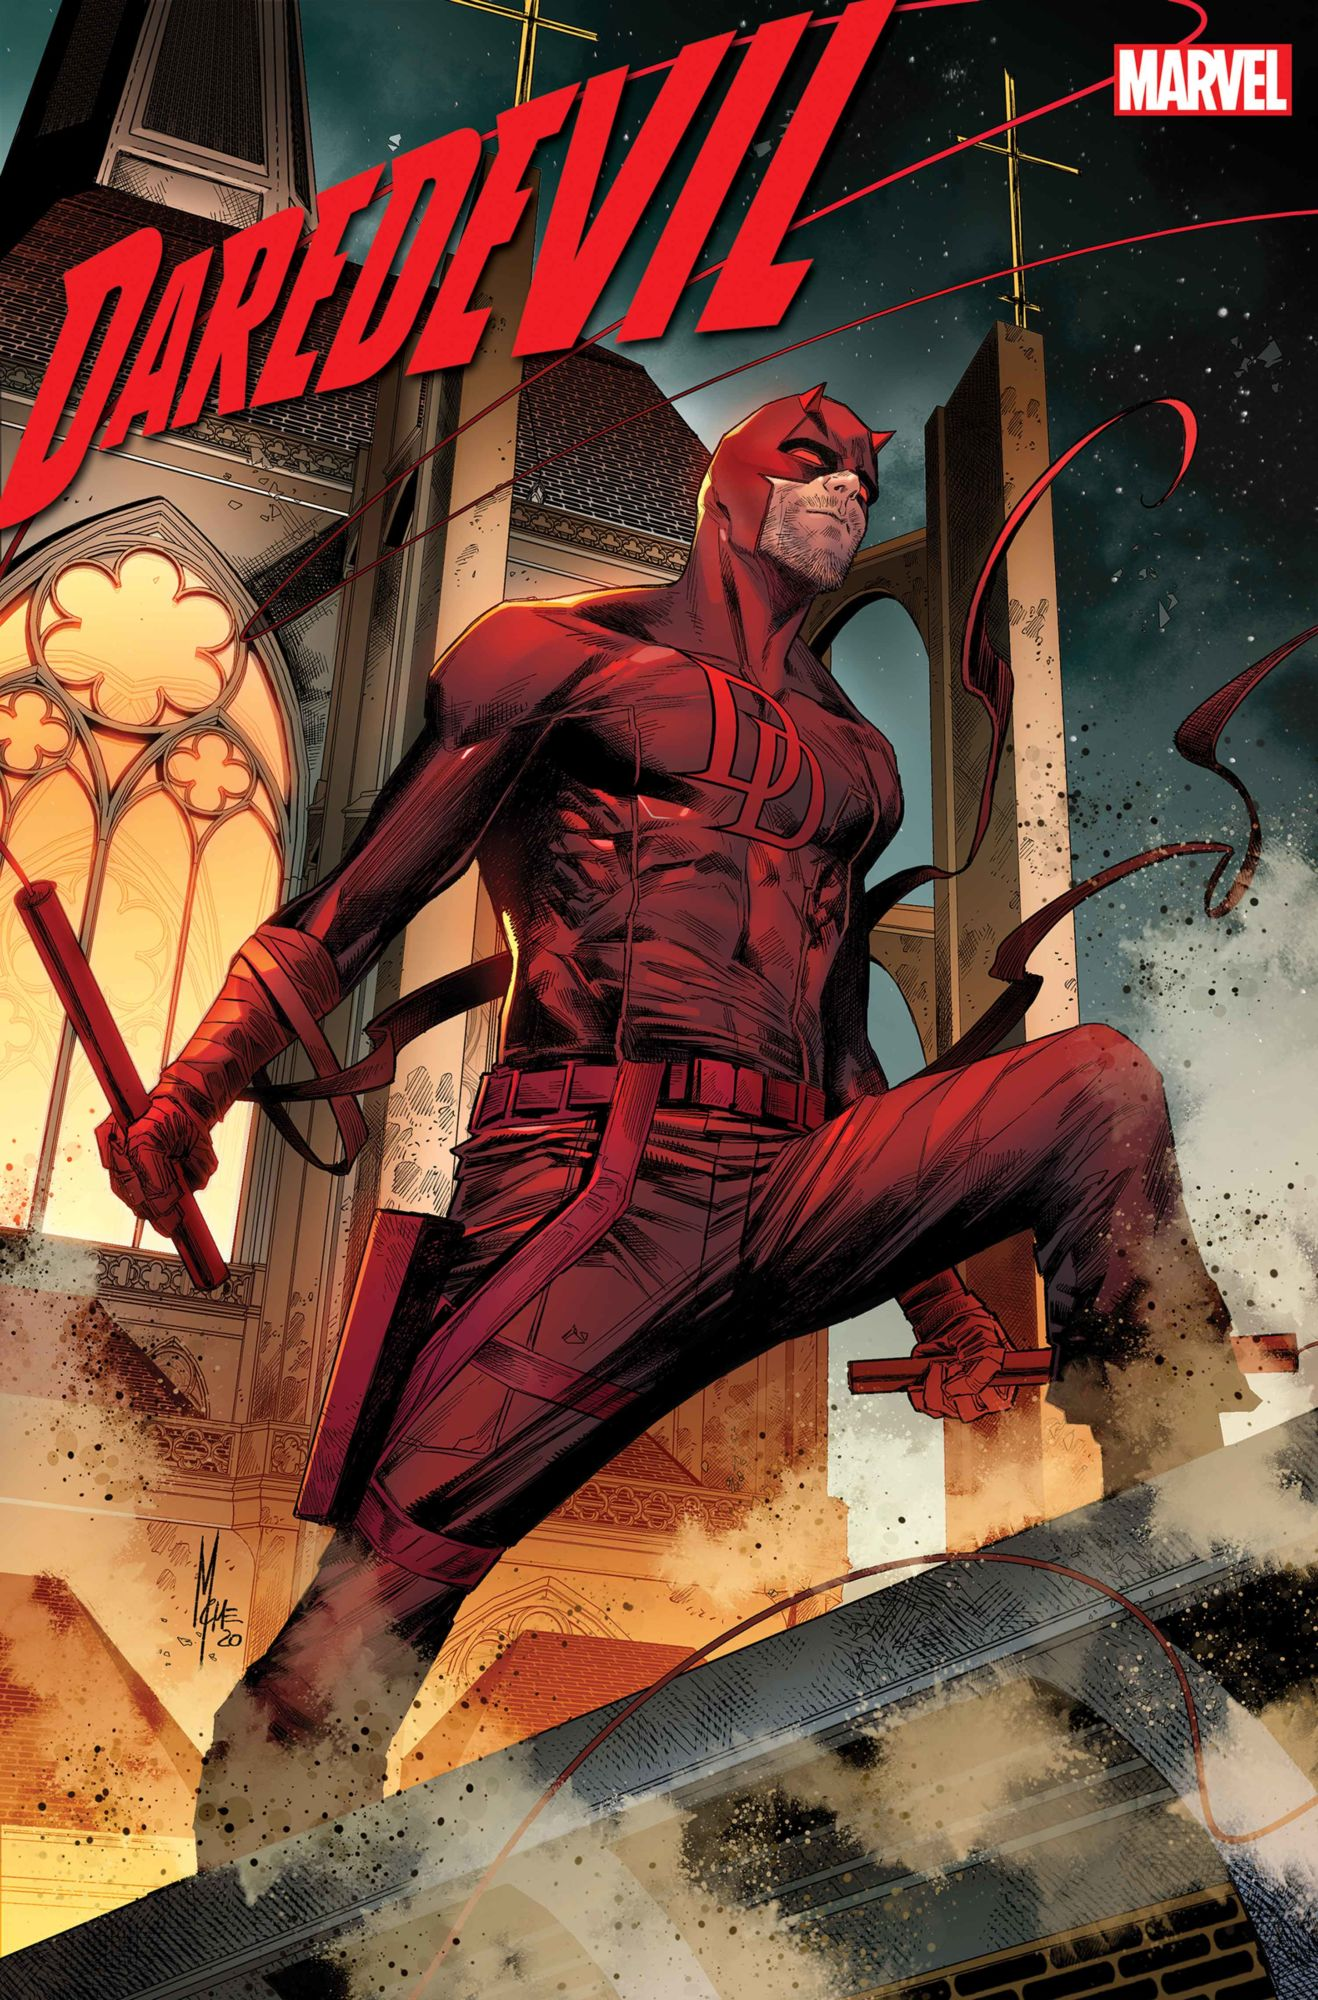 Marvel to Revisit One More Day this May in the Pages of... Daredevil?!